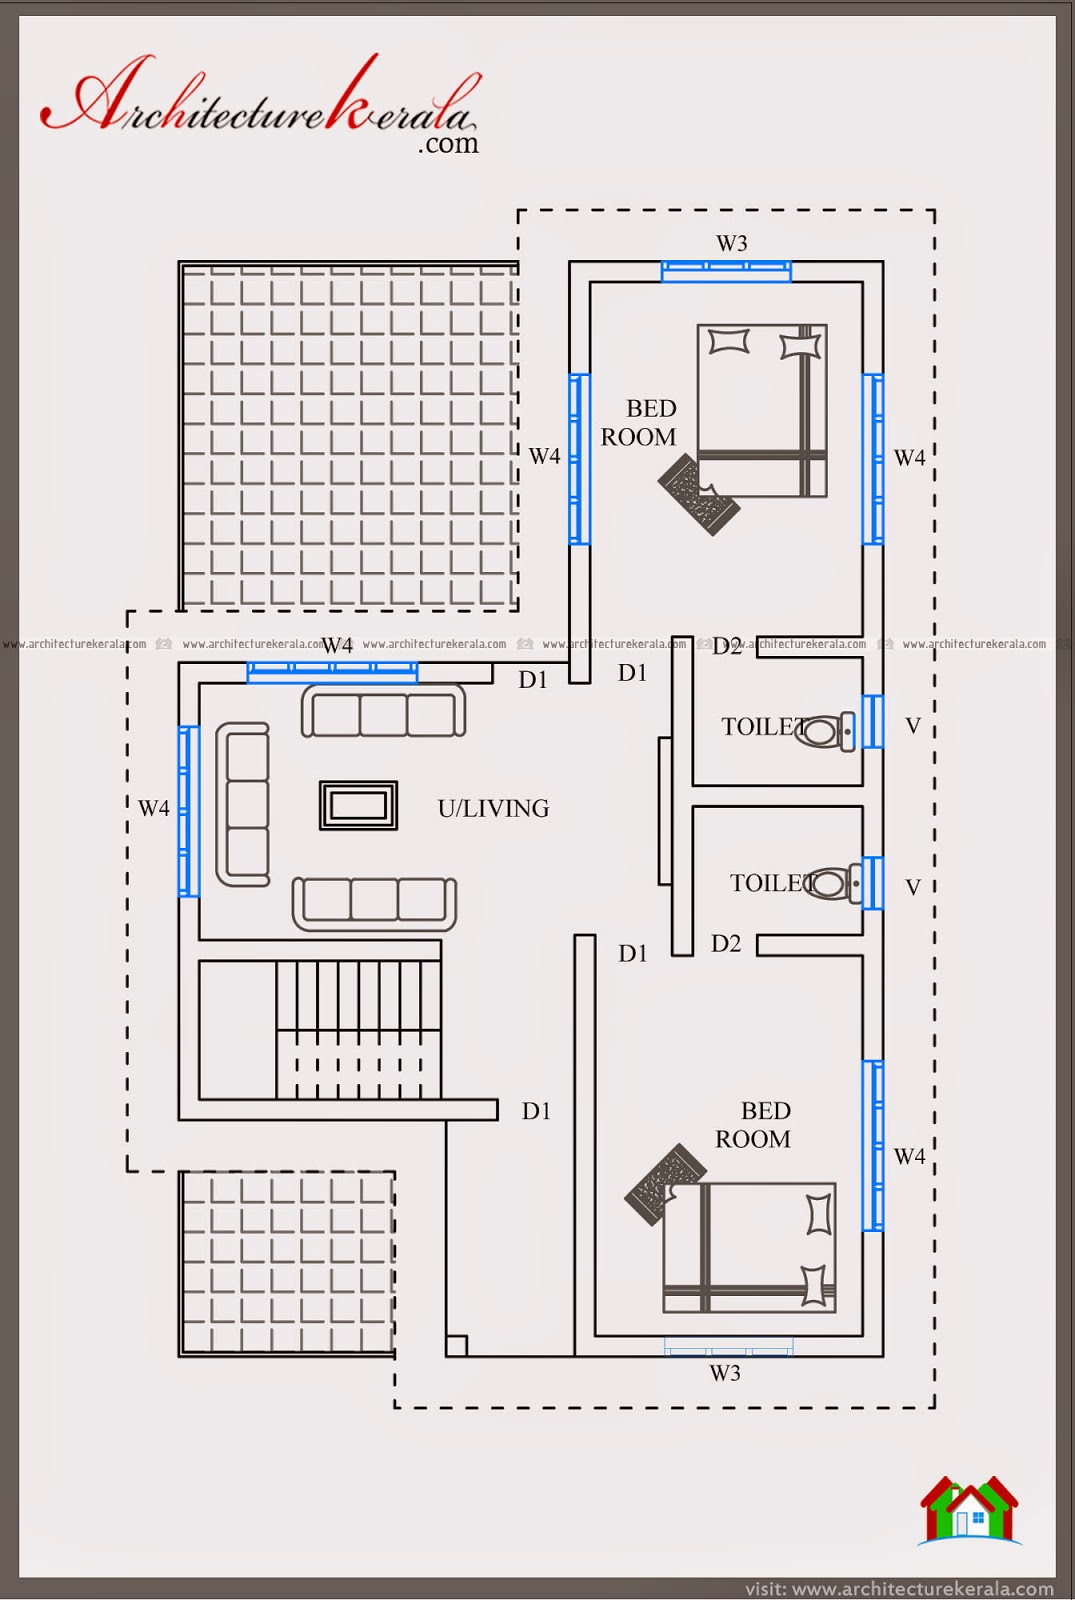 2000 sf house plan and elevation architecture kerala for House plan kerala 4 bedroom